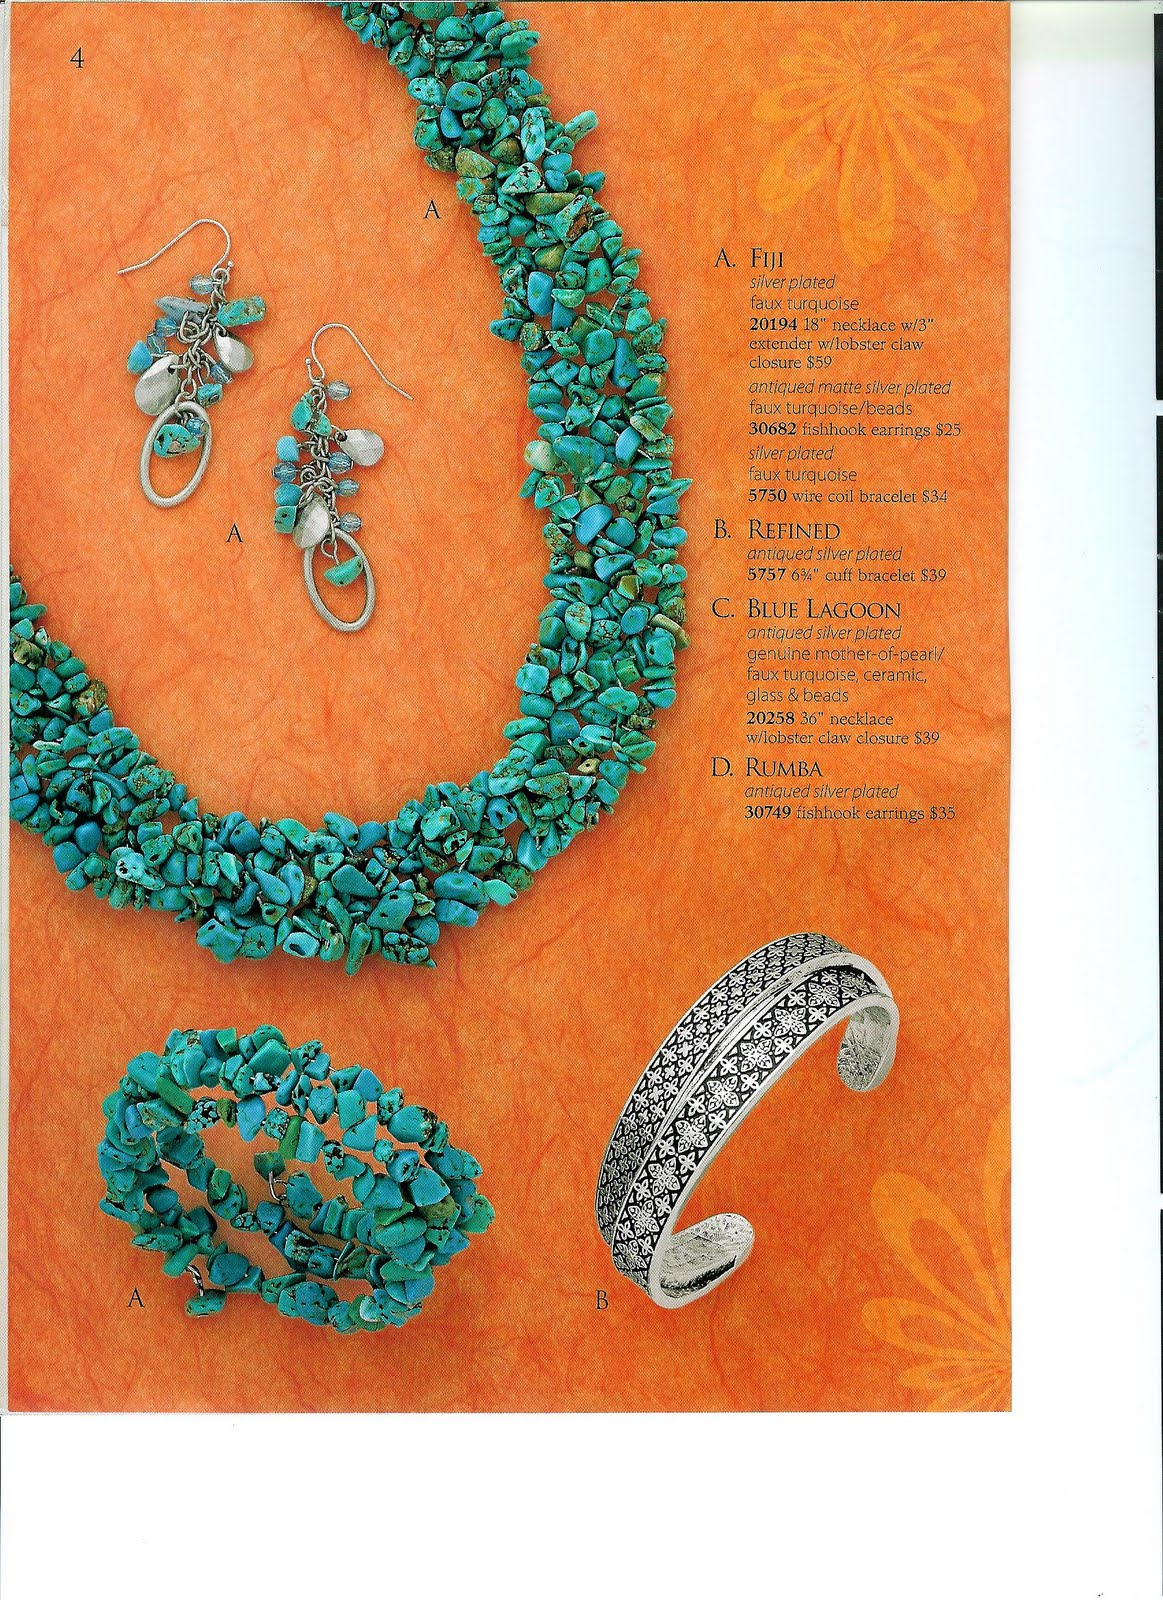 Jewelry diva spring summer catalog 2011 for Premier jewelry catalog 2011